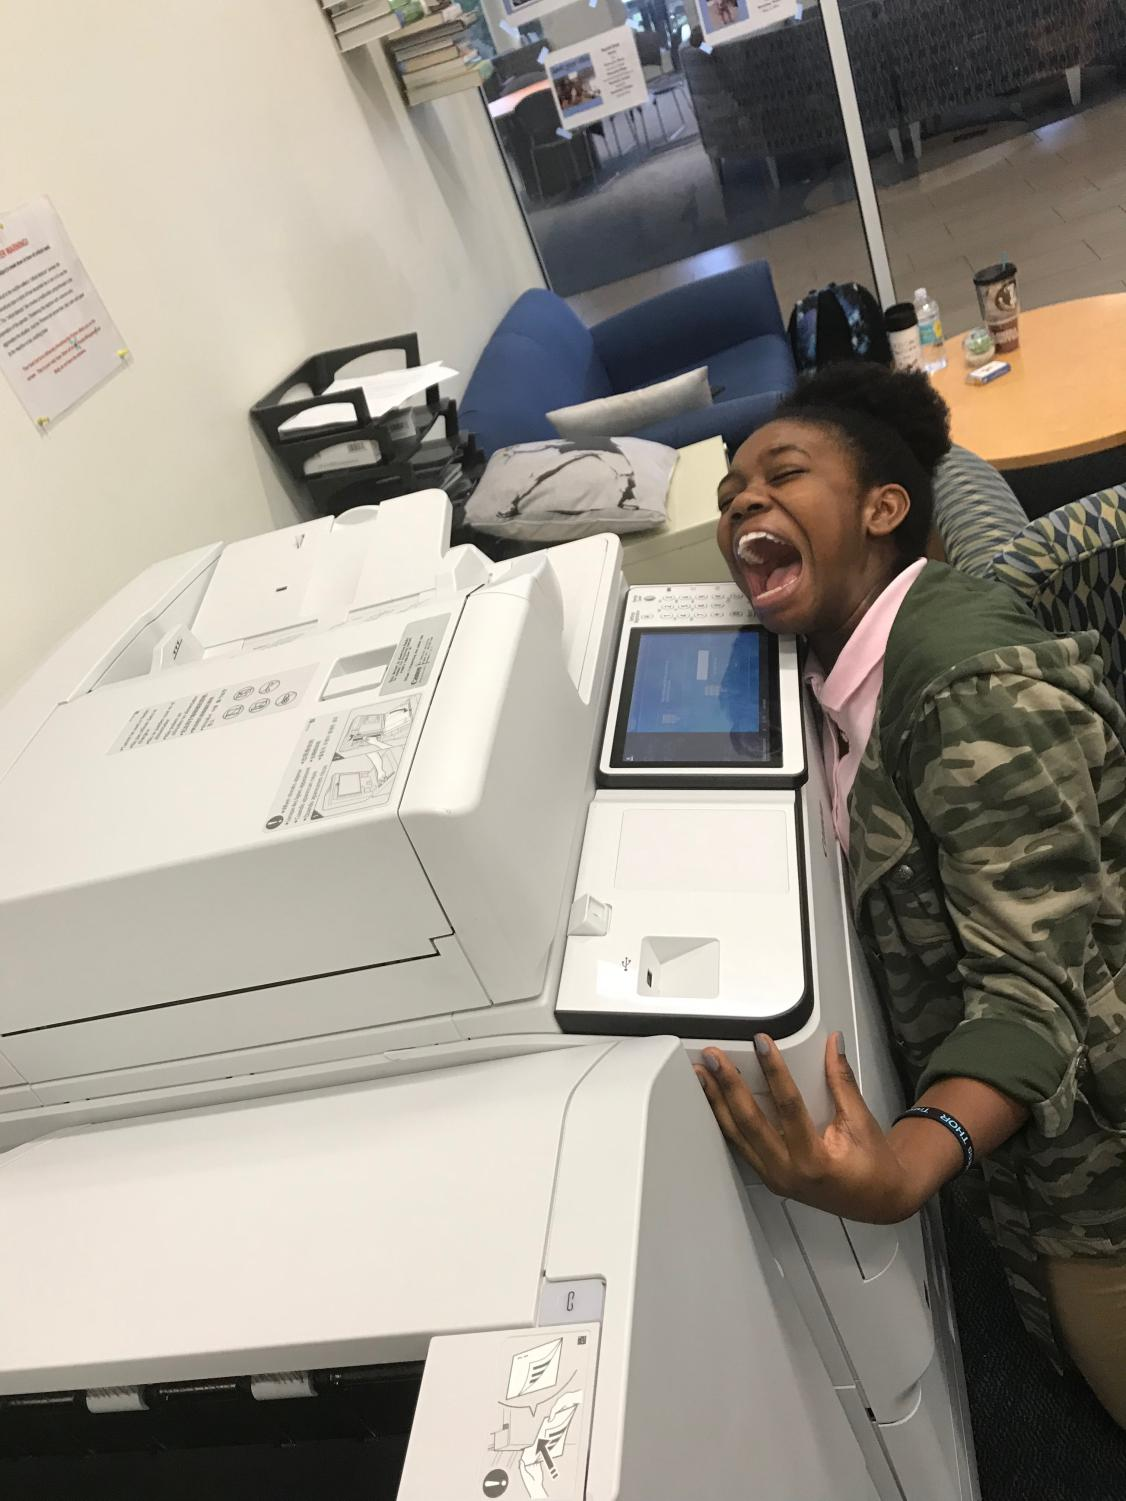 Aaliyaa Genat panicking at the printer